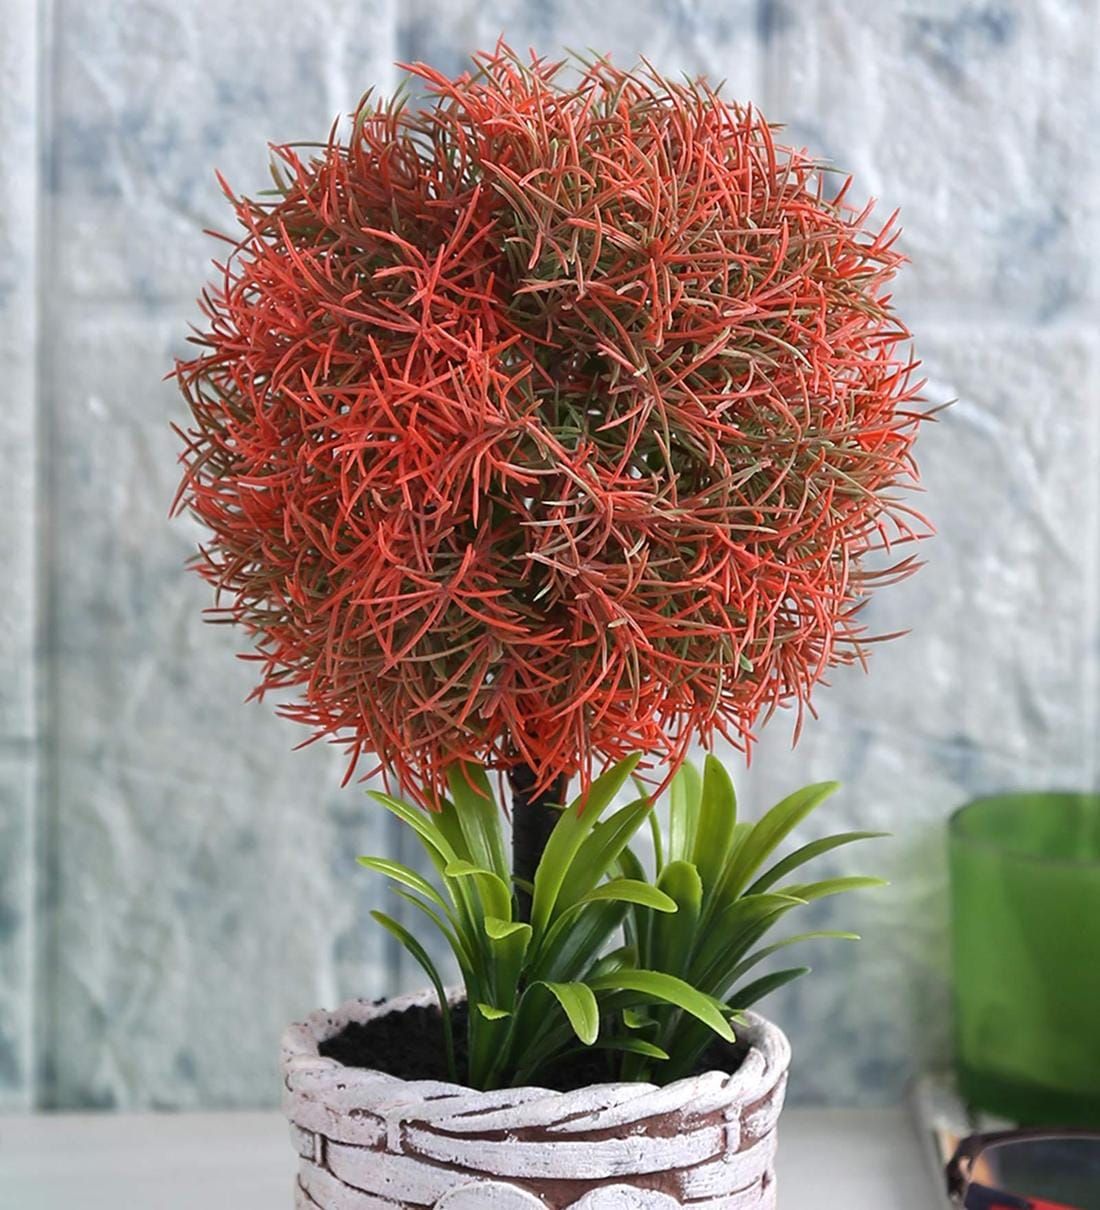 Buy Red Soft Touch Artificial Topiary Plant In A Ceramic Pot By Fourwalls Online Artificial Plants Artificial Plants Home Decor Pepperfry Product